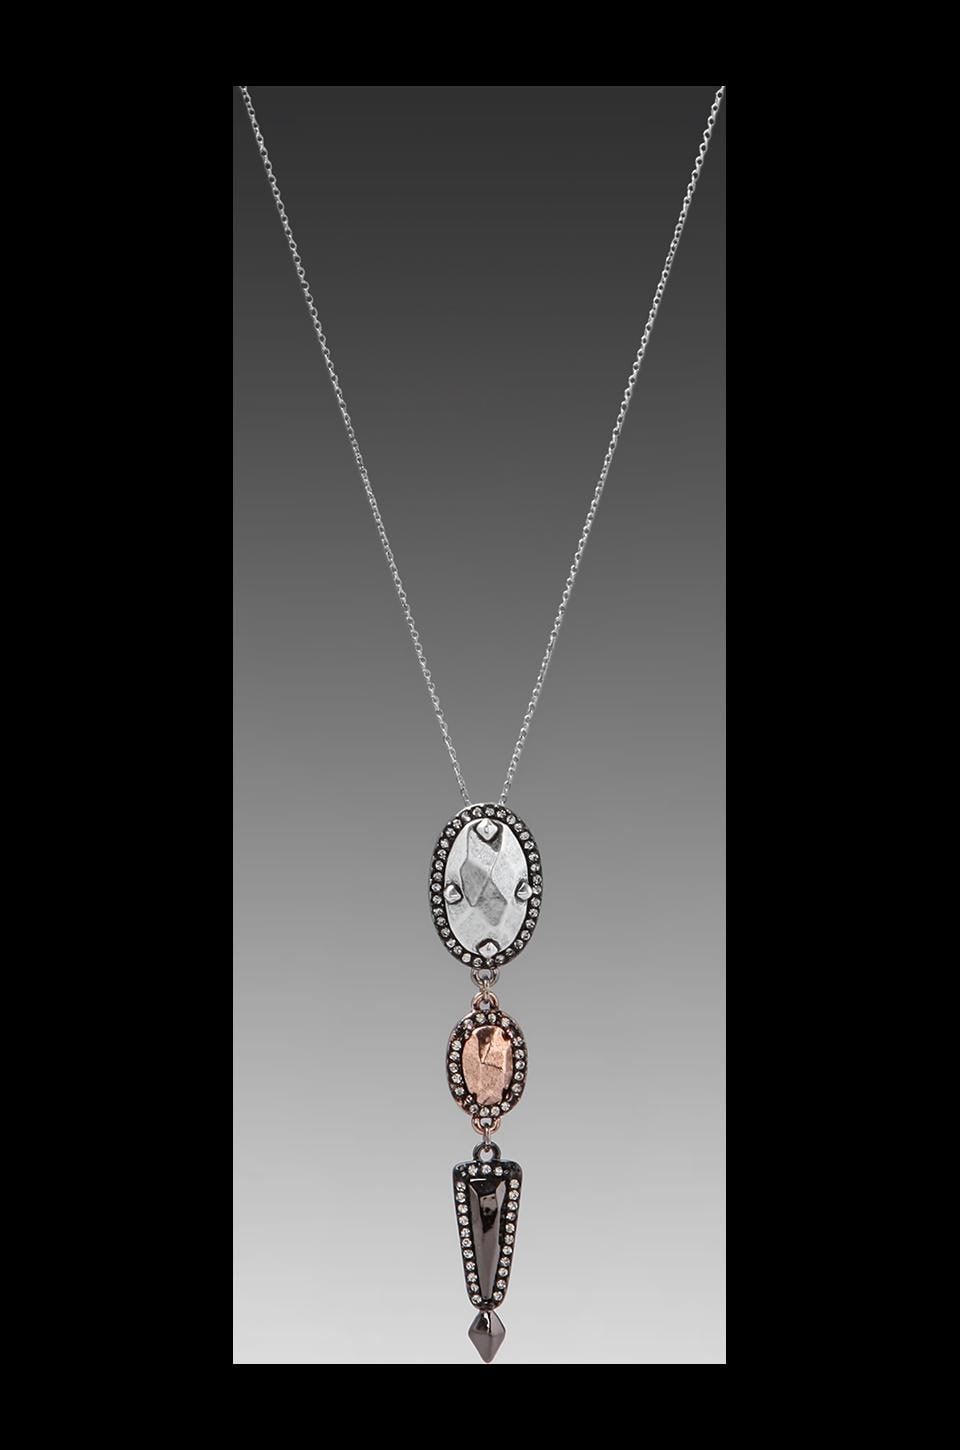 House of Harlow Rif Rebble Pendant Necklace in Tri Tone